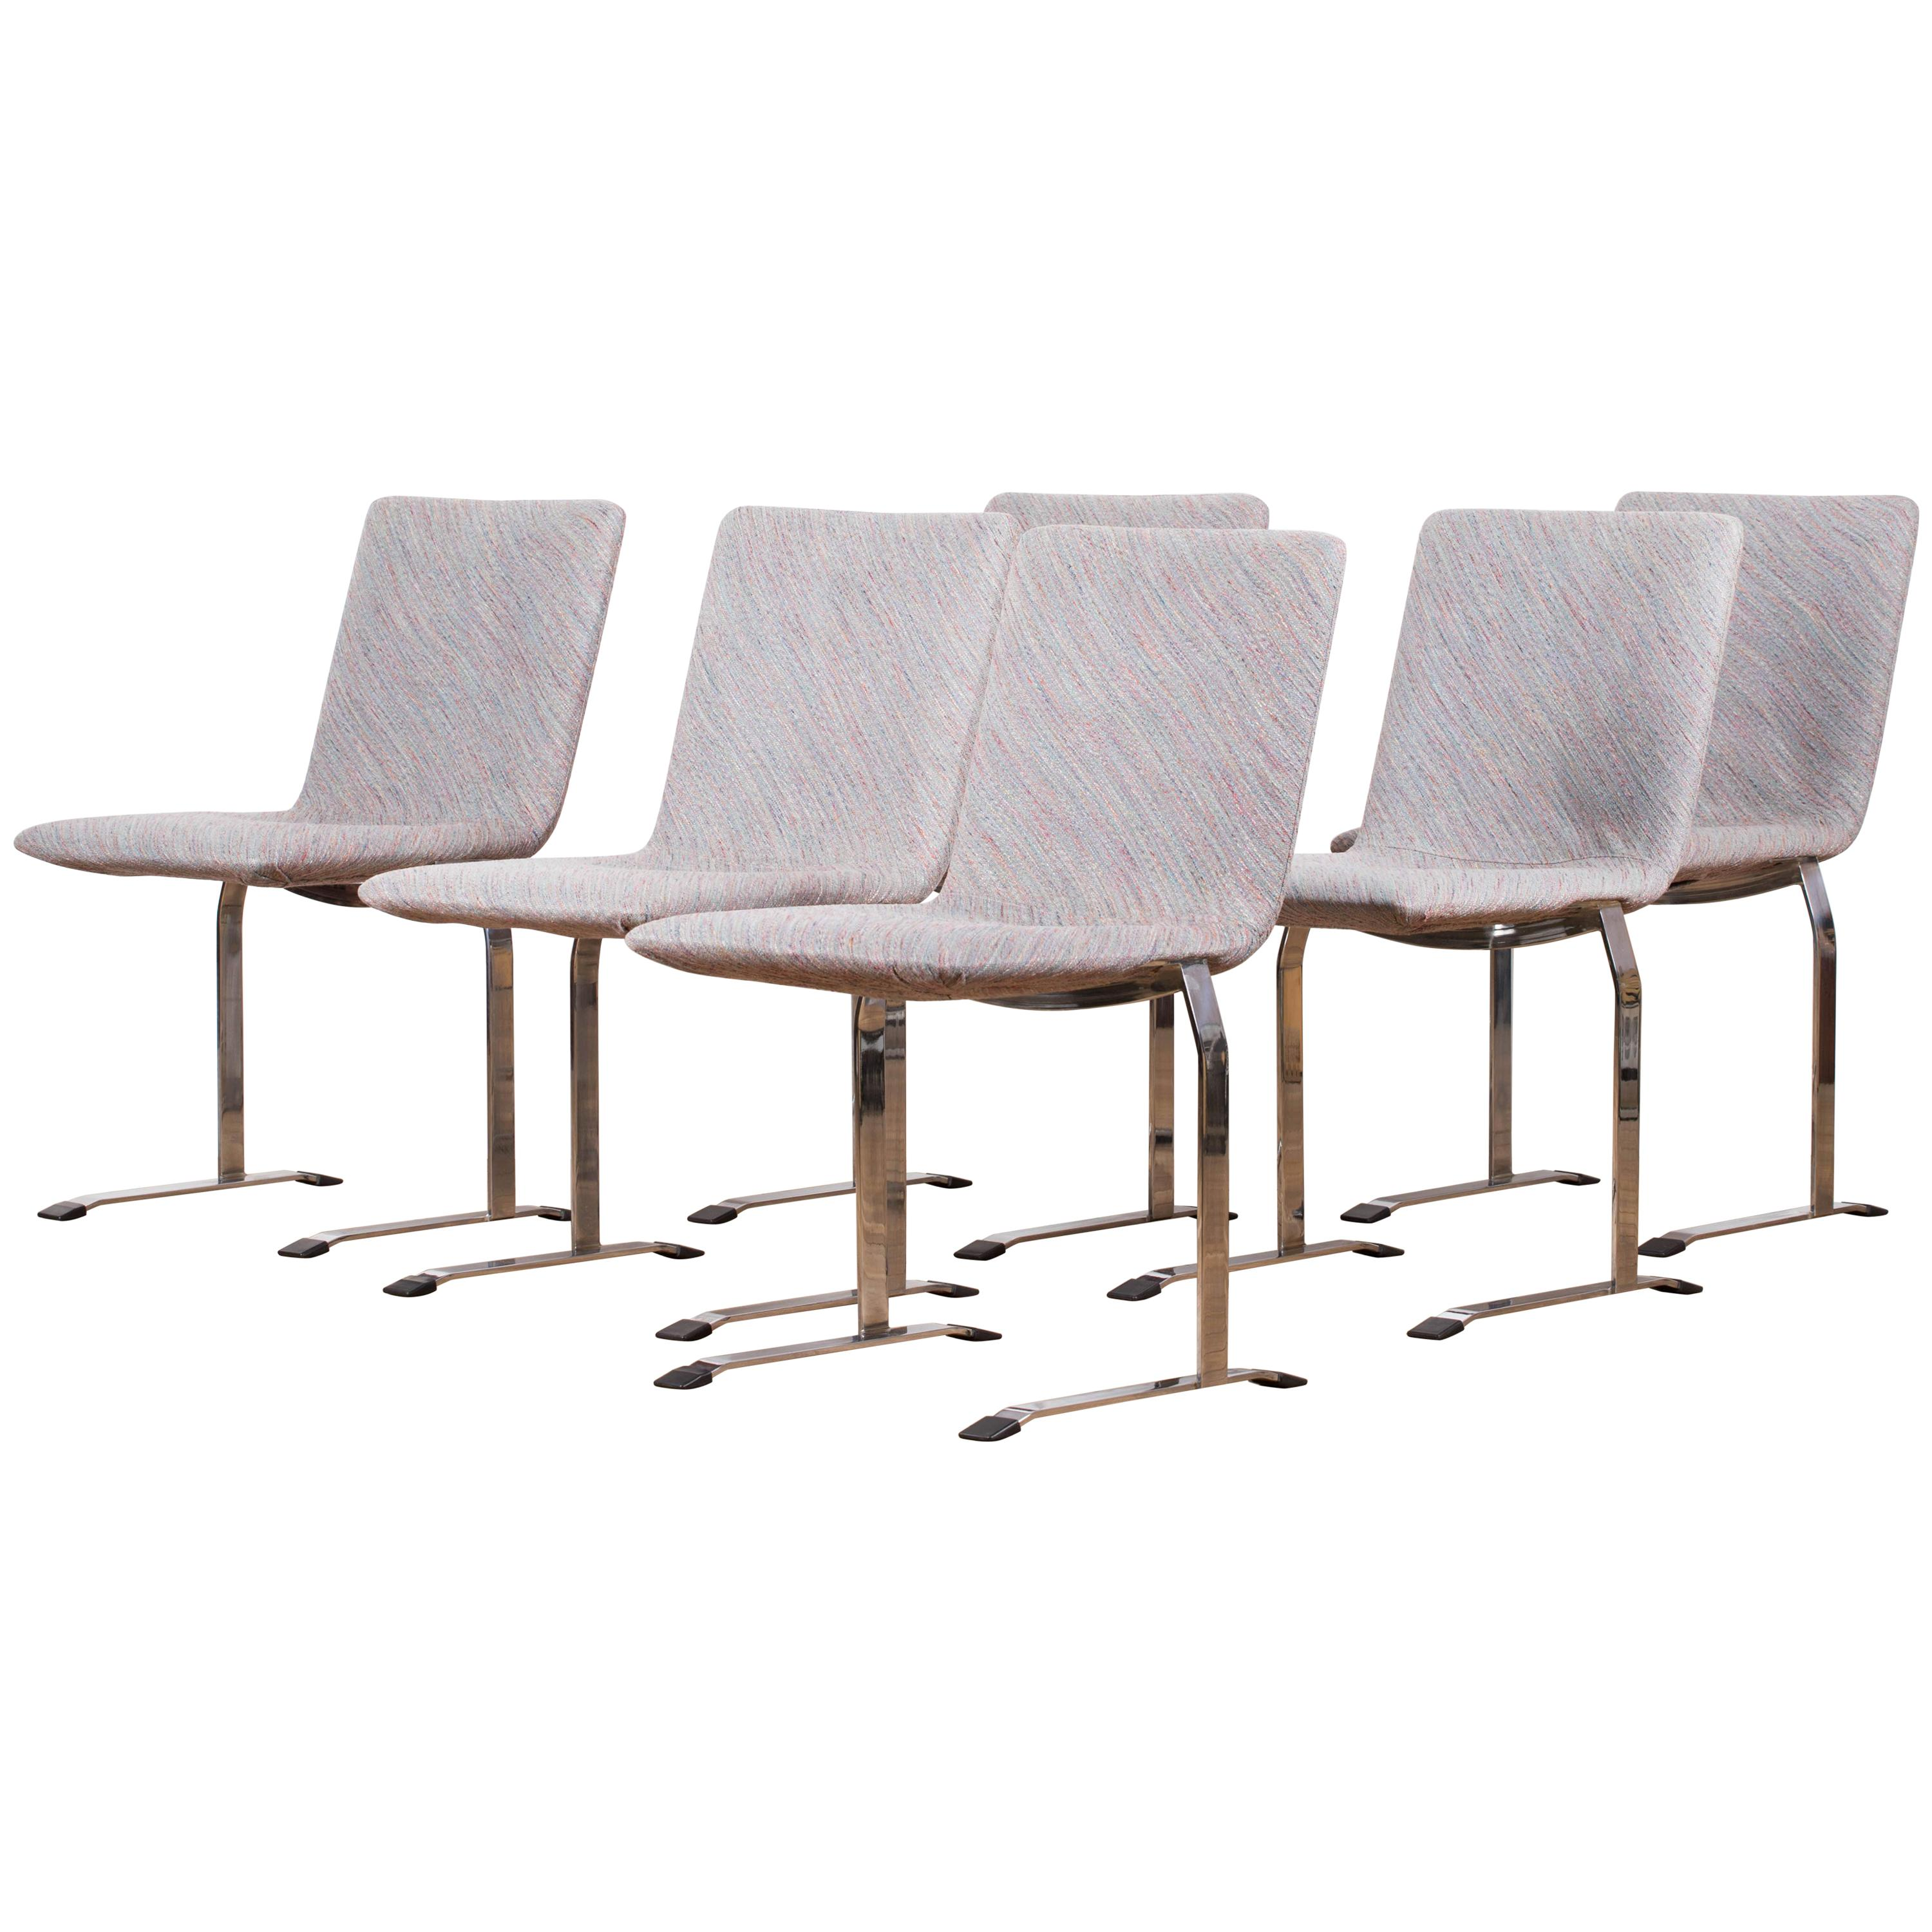 Set of Twelve Inlay Chairs by Giovanni Offredi for Saporiti, 1970